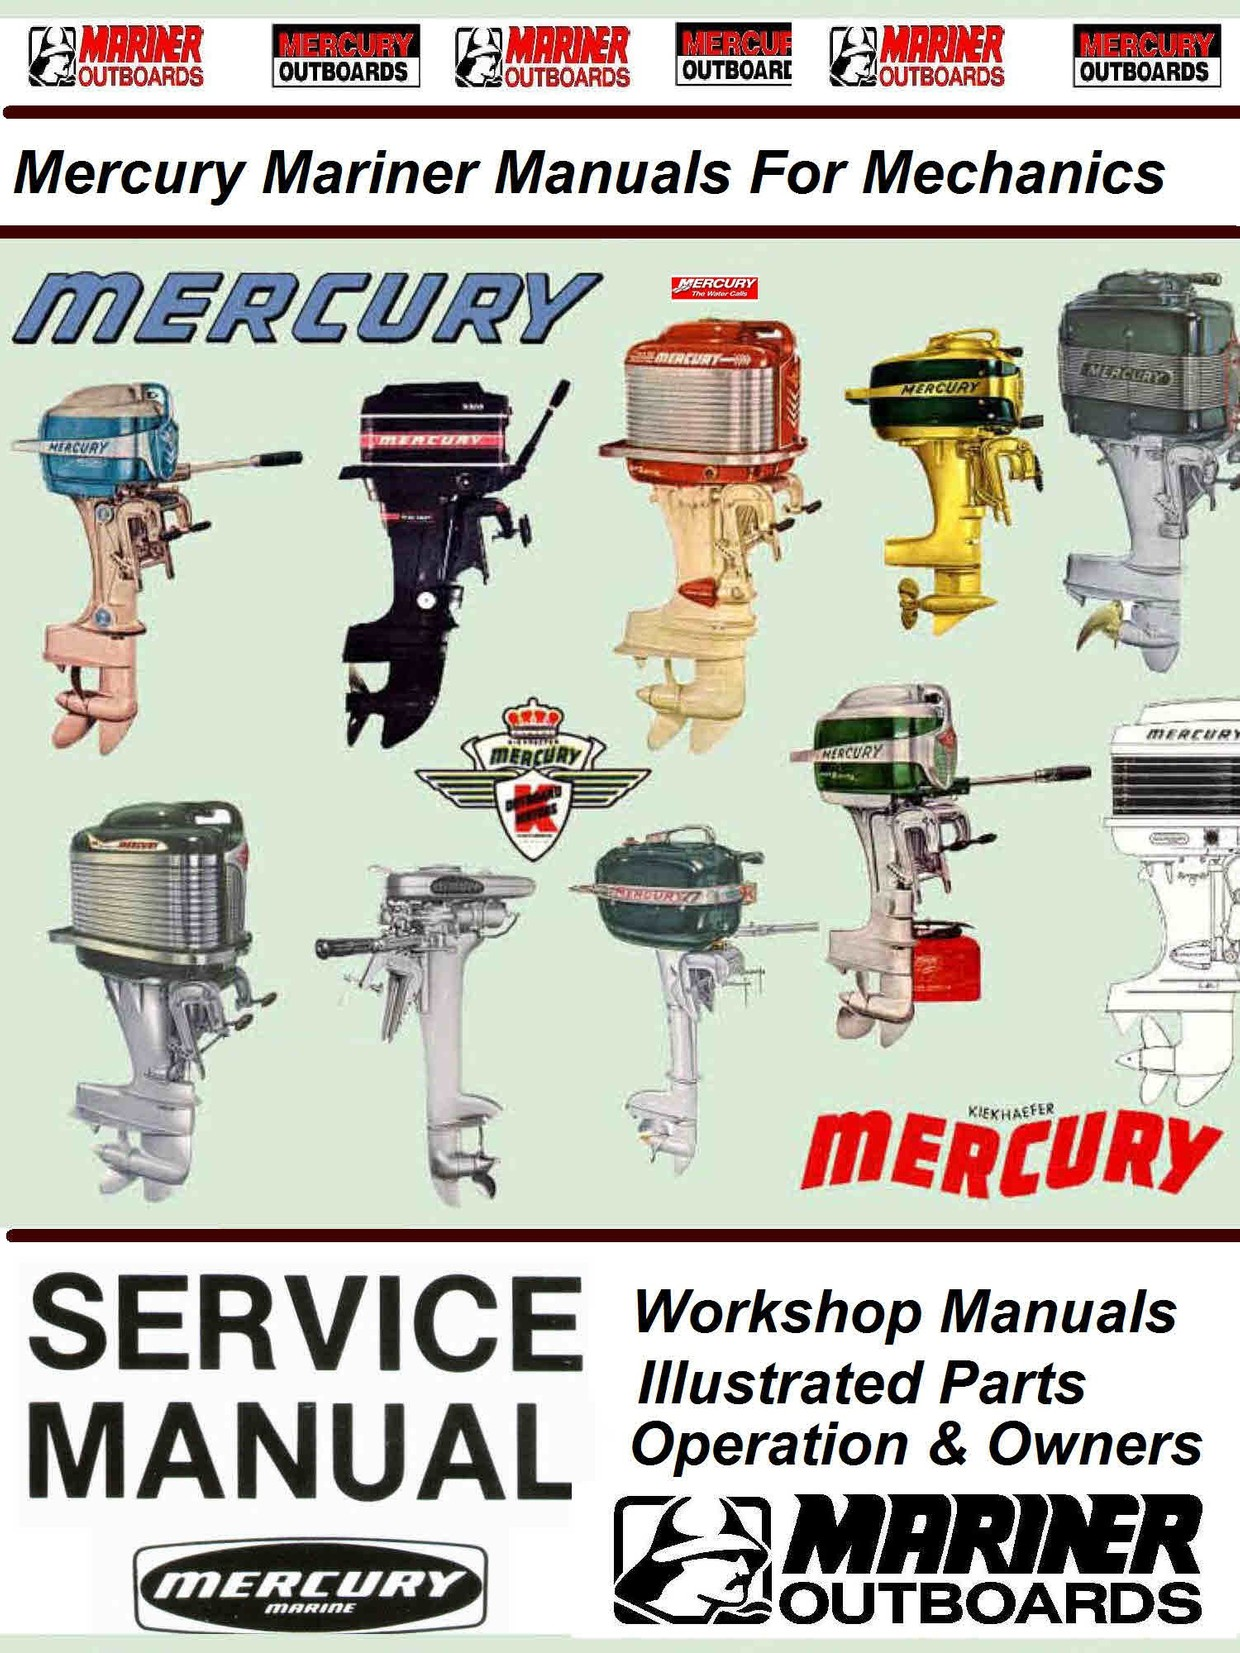 Mercury Mariner Vintage Service Manuals For Mechanic Themanualman